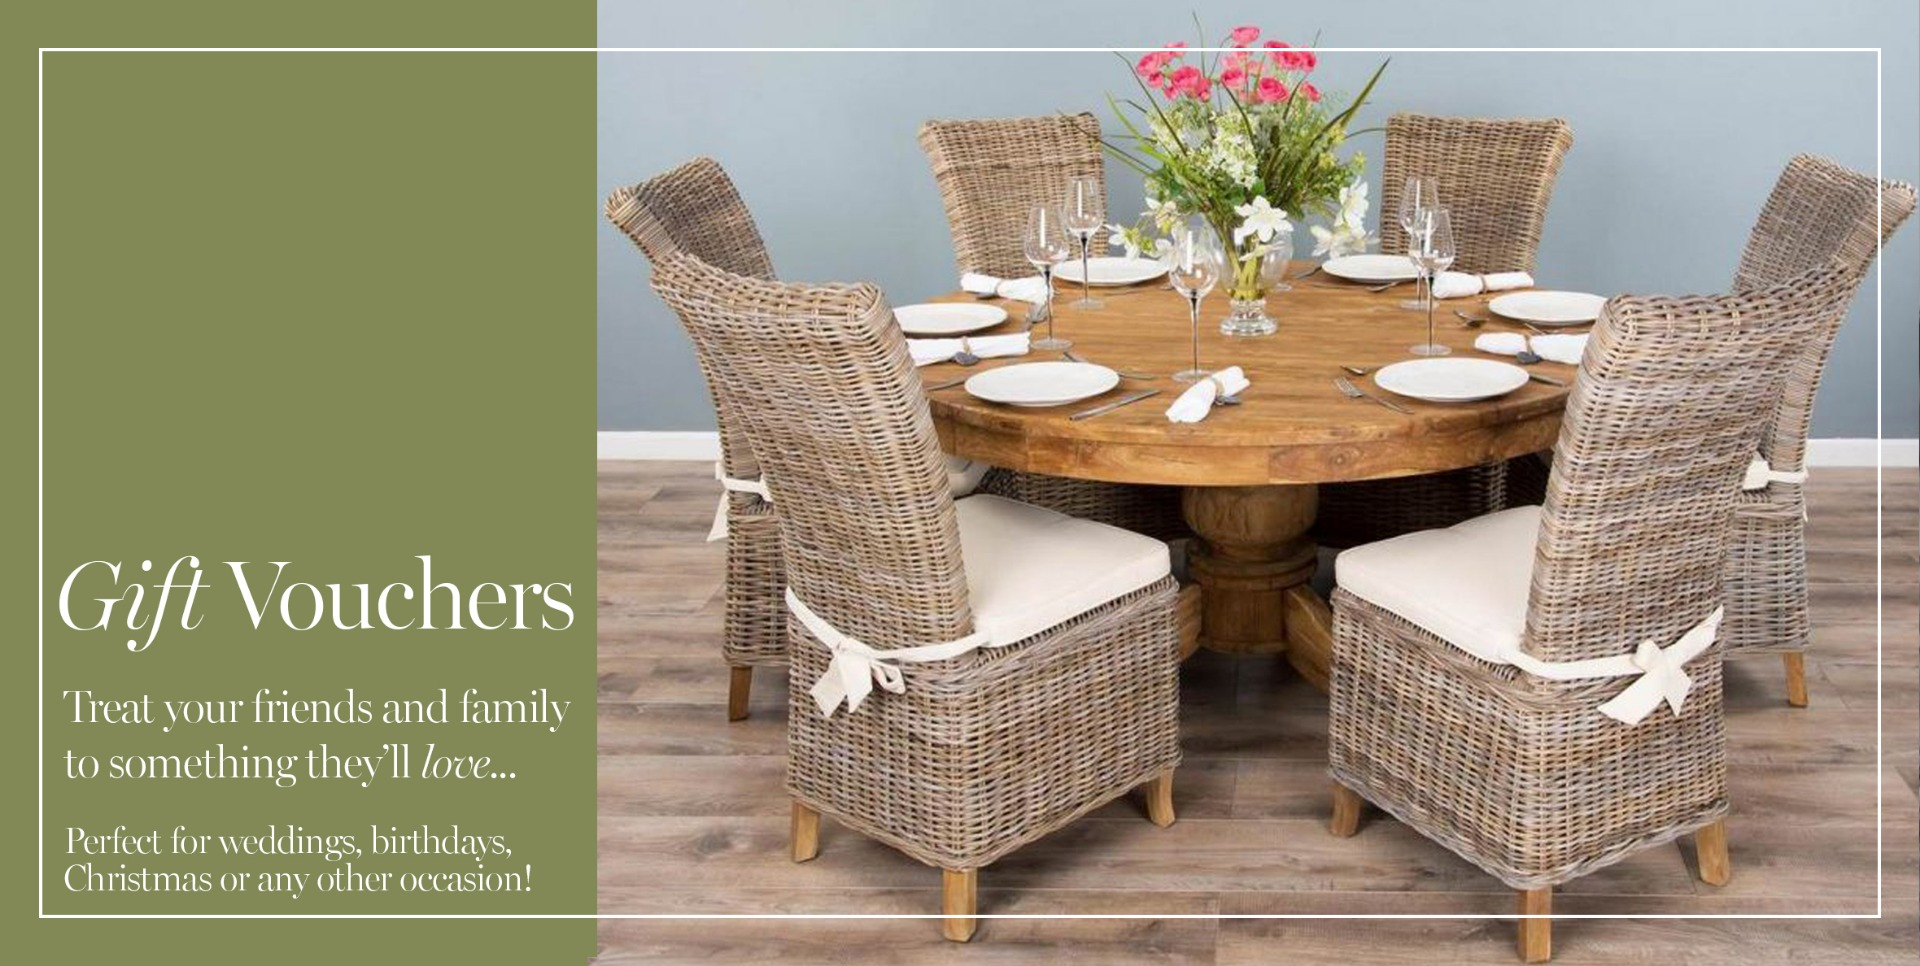 https://www.sustainable-furniture.co.uk/gift-voucher